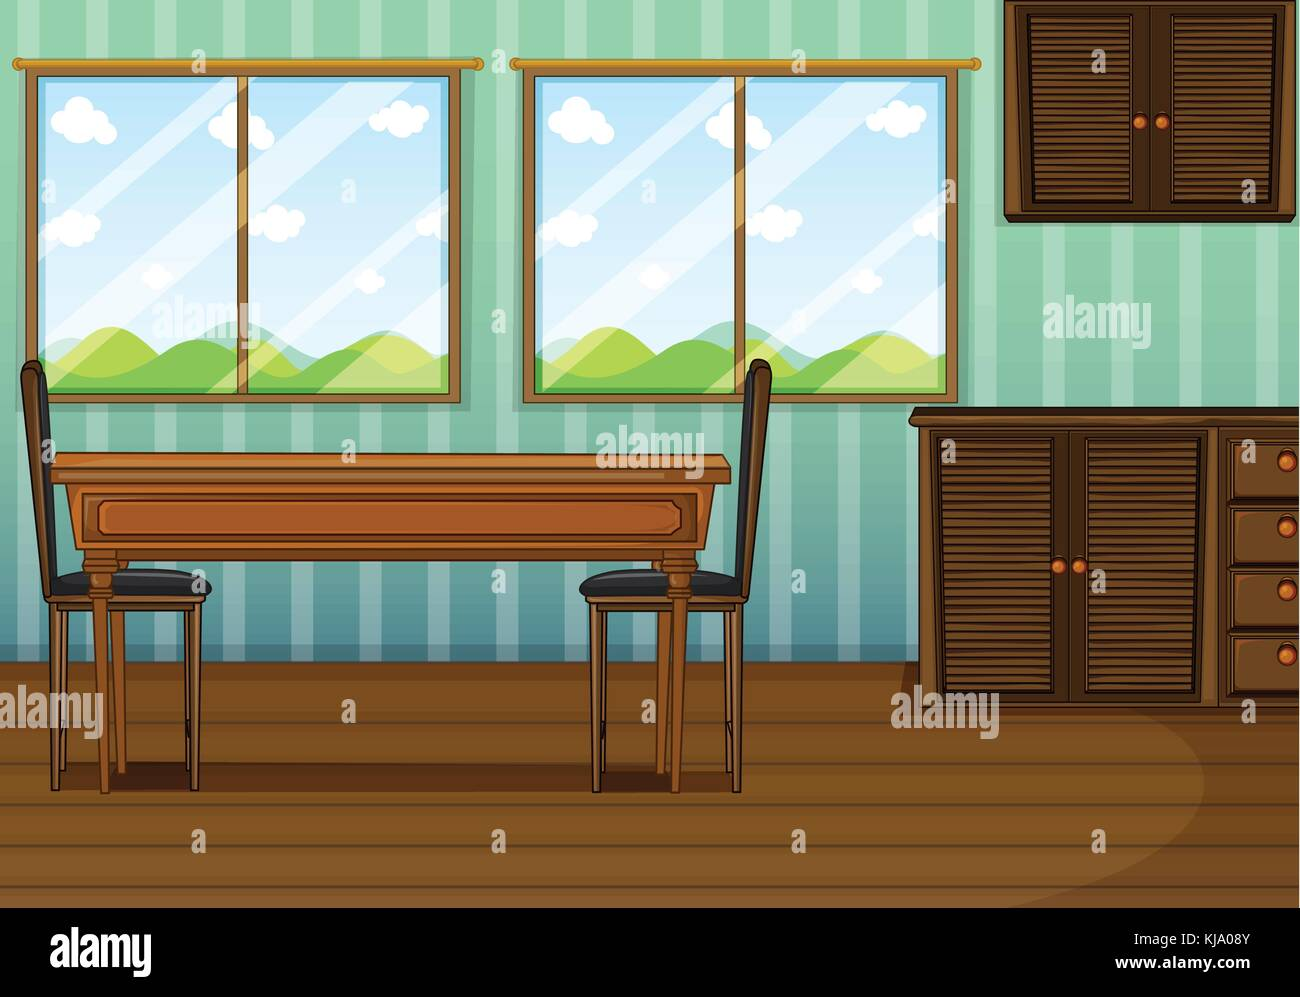 Illustration Of A Clean Dining Room With Wooden Furnitures